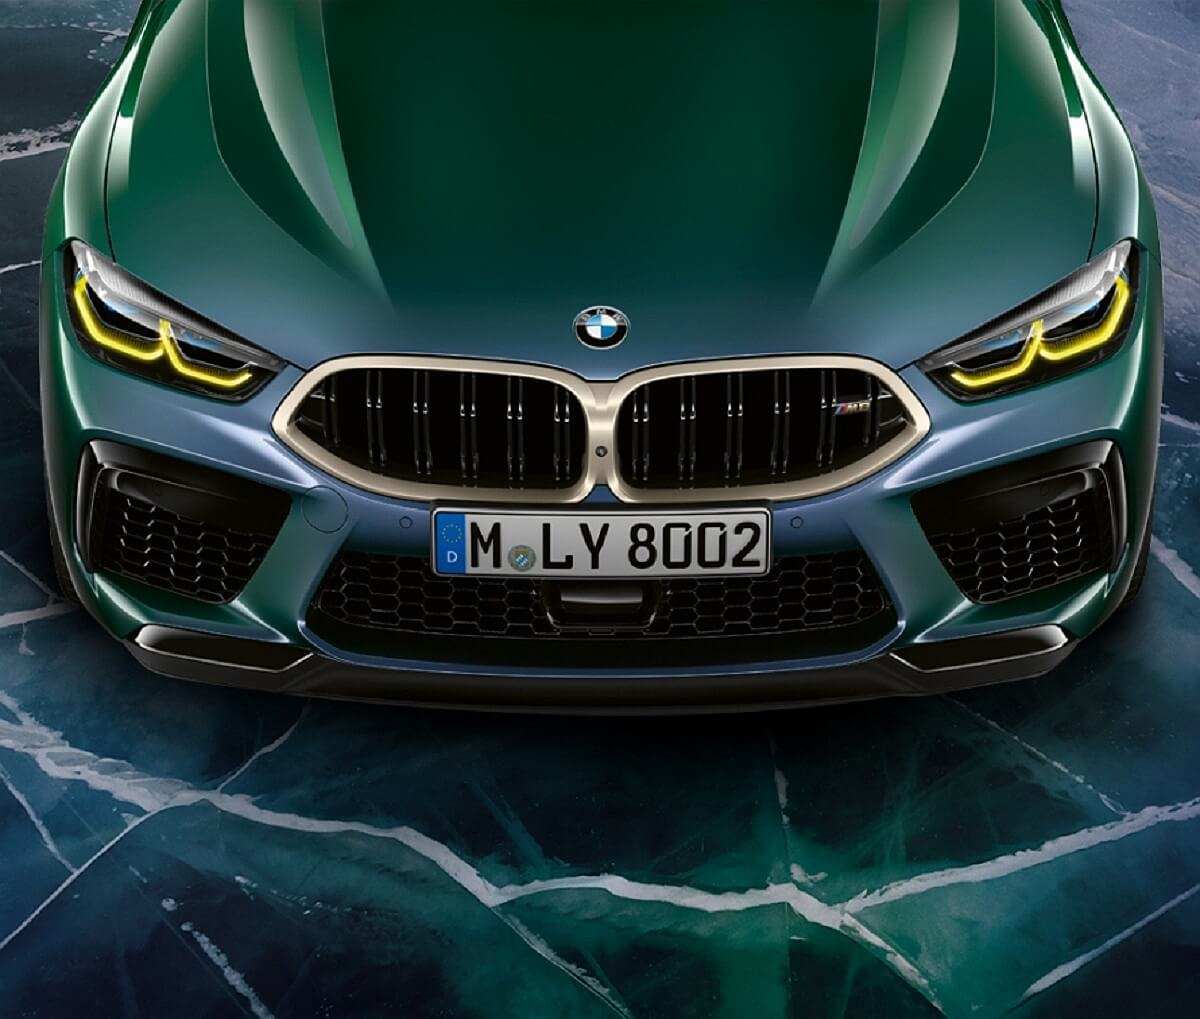 bmw-m8-gran-coupé-first-edition-ms-02-backplate.jpg